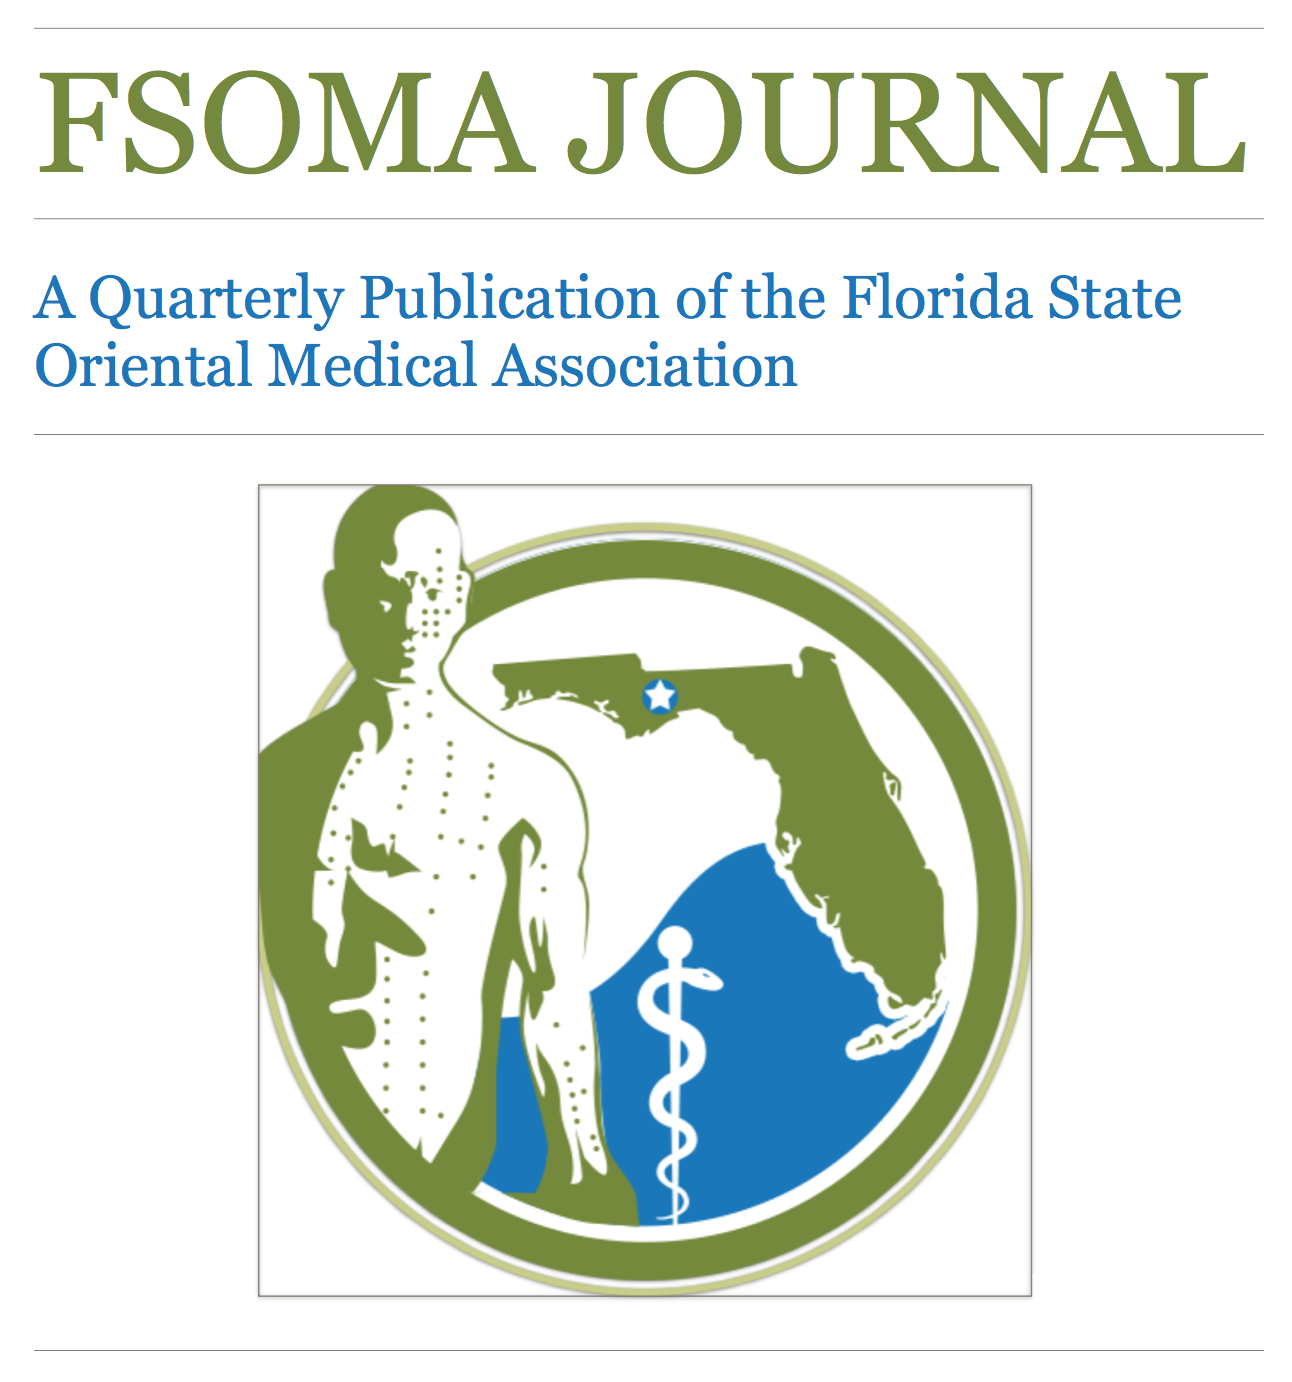 FSOMA Journal Logo and link